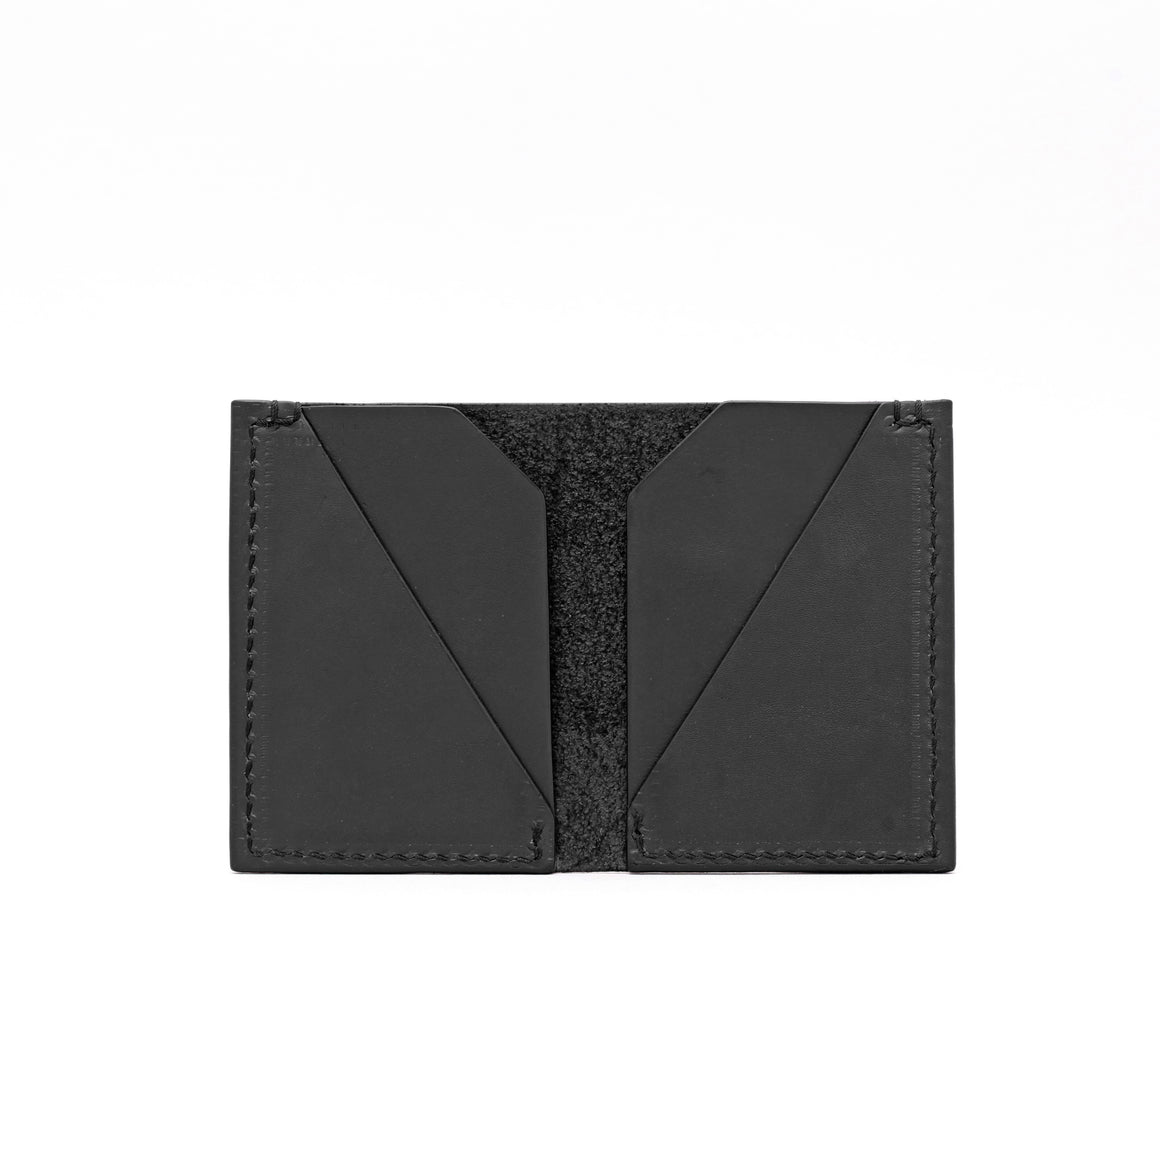 DOUBLE POCKET FOLD WALLET IN BLACK